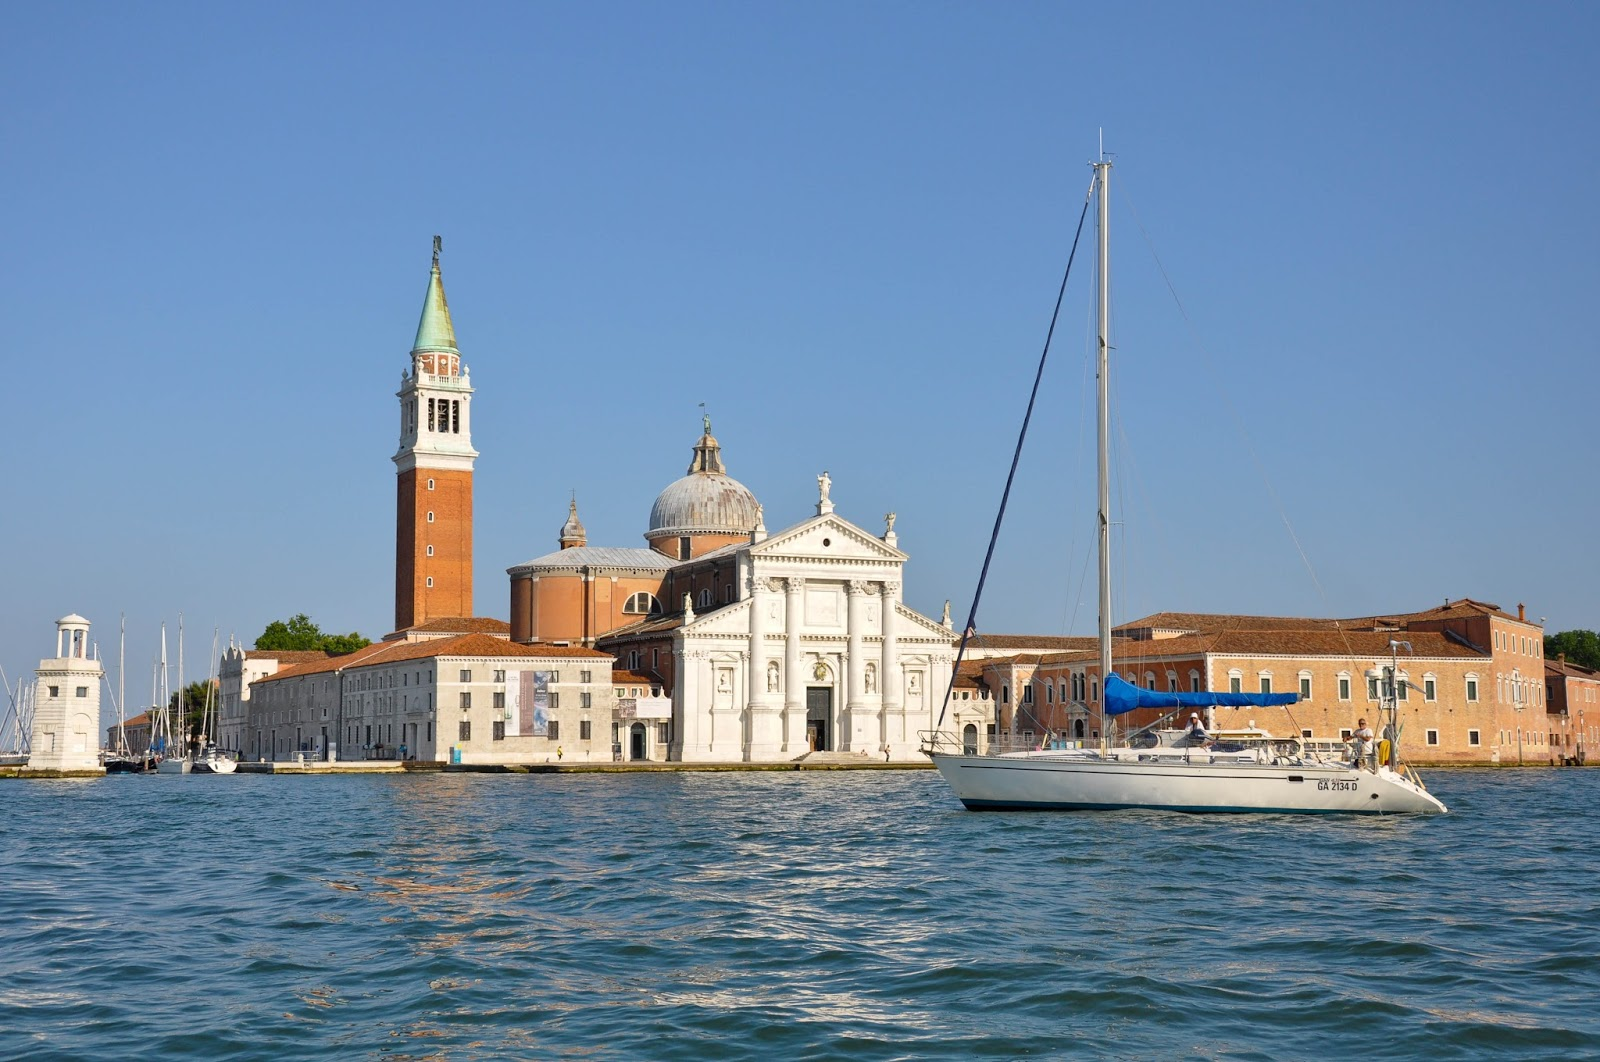 Passing by the island of San Giorgio Maggiore, Regatta of the Ancient Maritime Republics, Venice, Italy